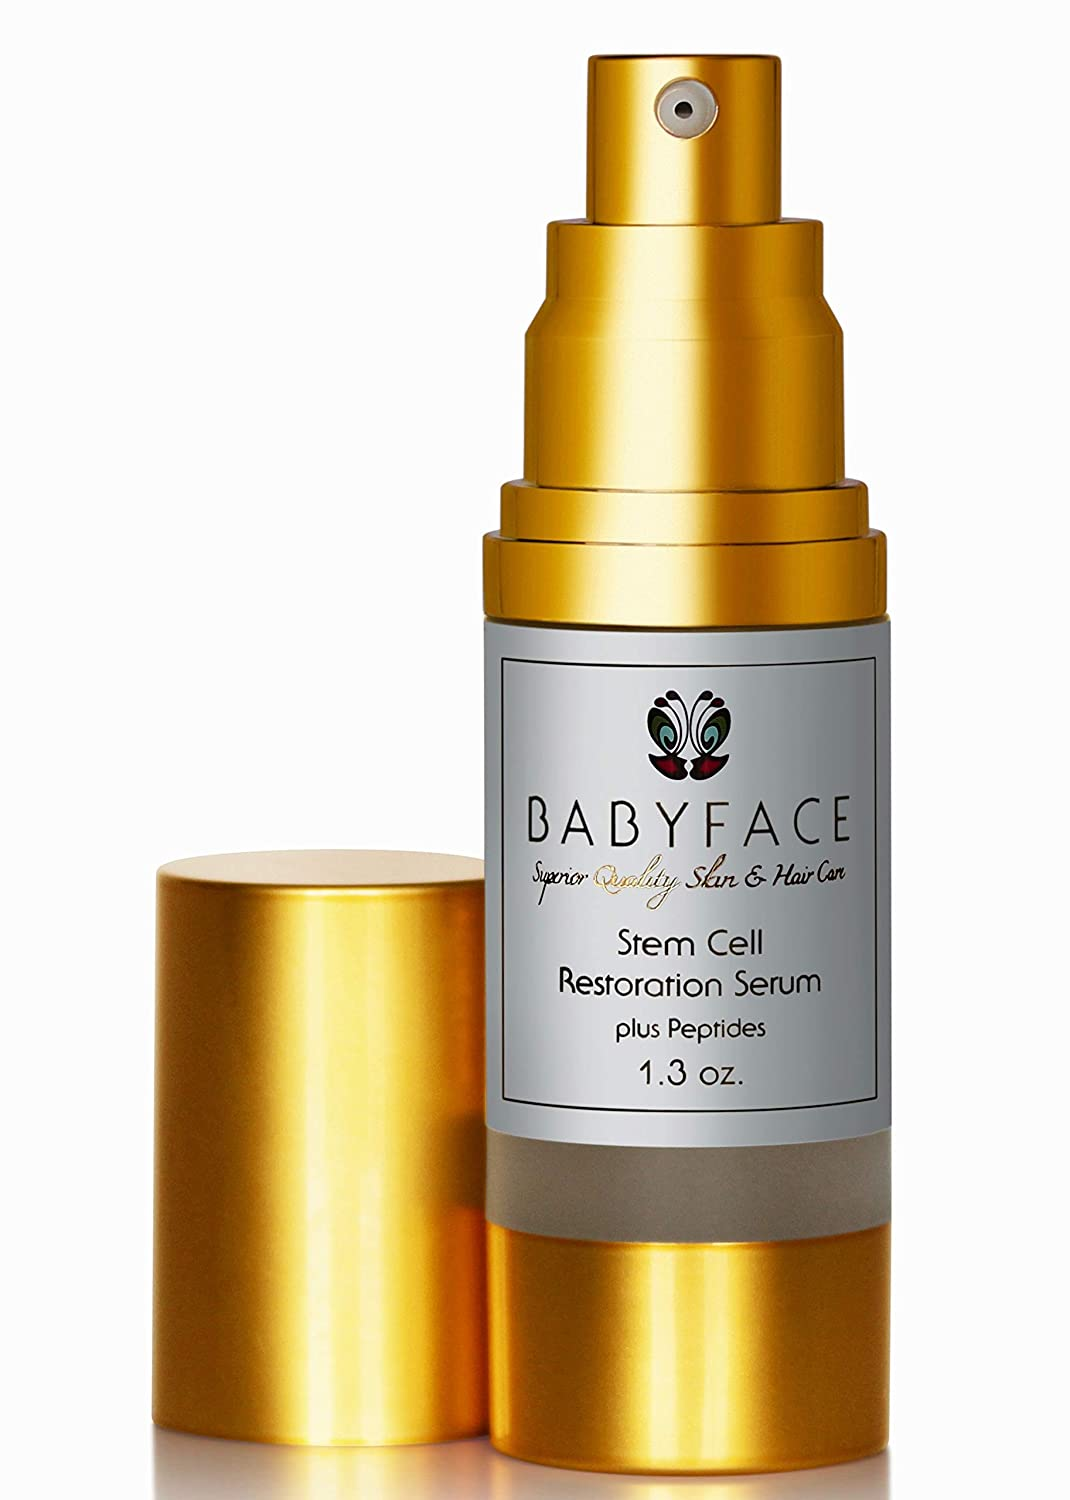 Babyface Anti-Ageing Serum